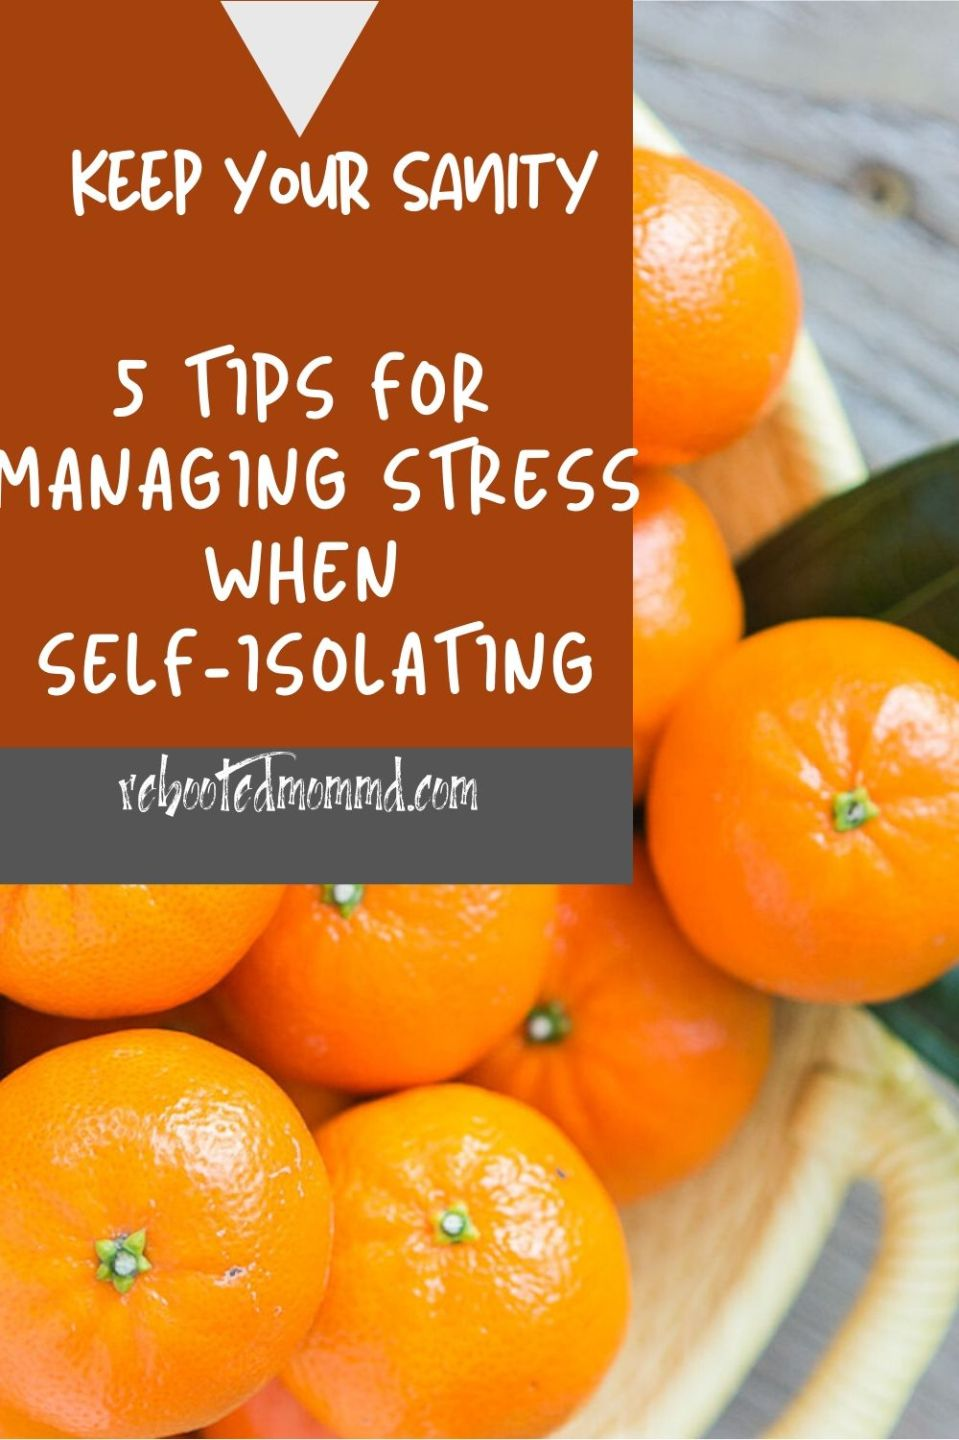 5 Tips for Managing Stress While Self-Isolating